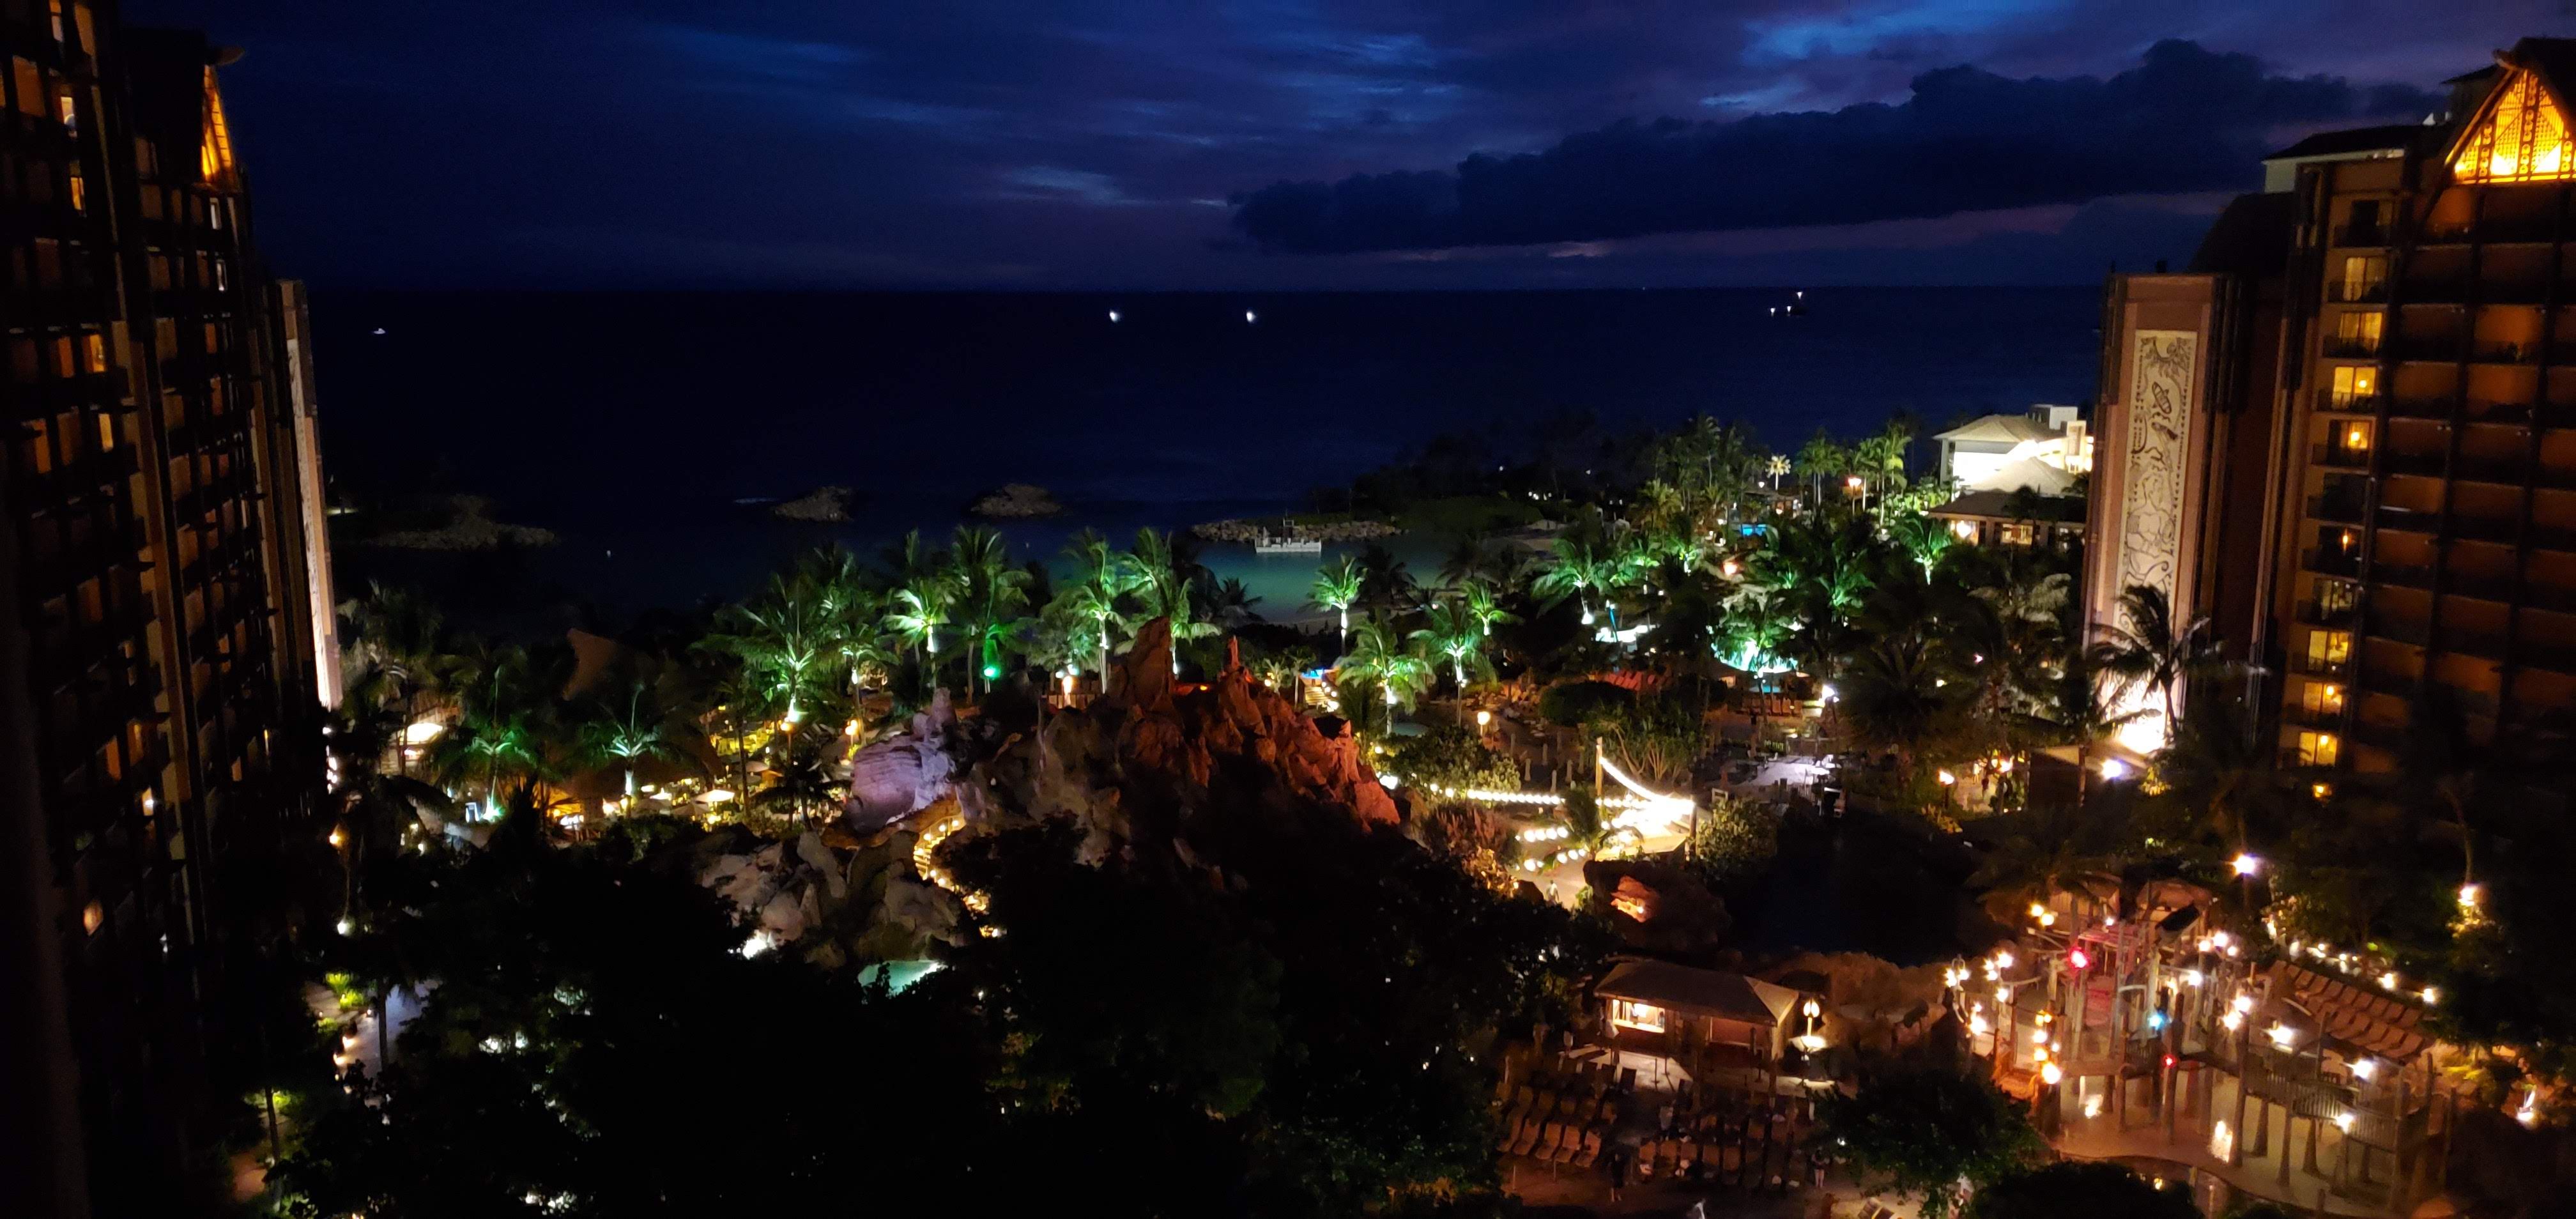 Evenings at the Aulani resort are beautiful.